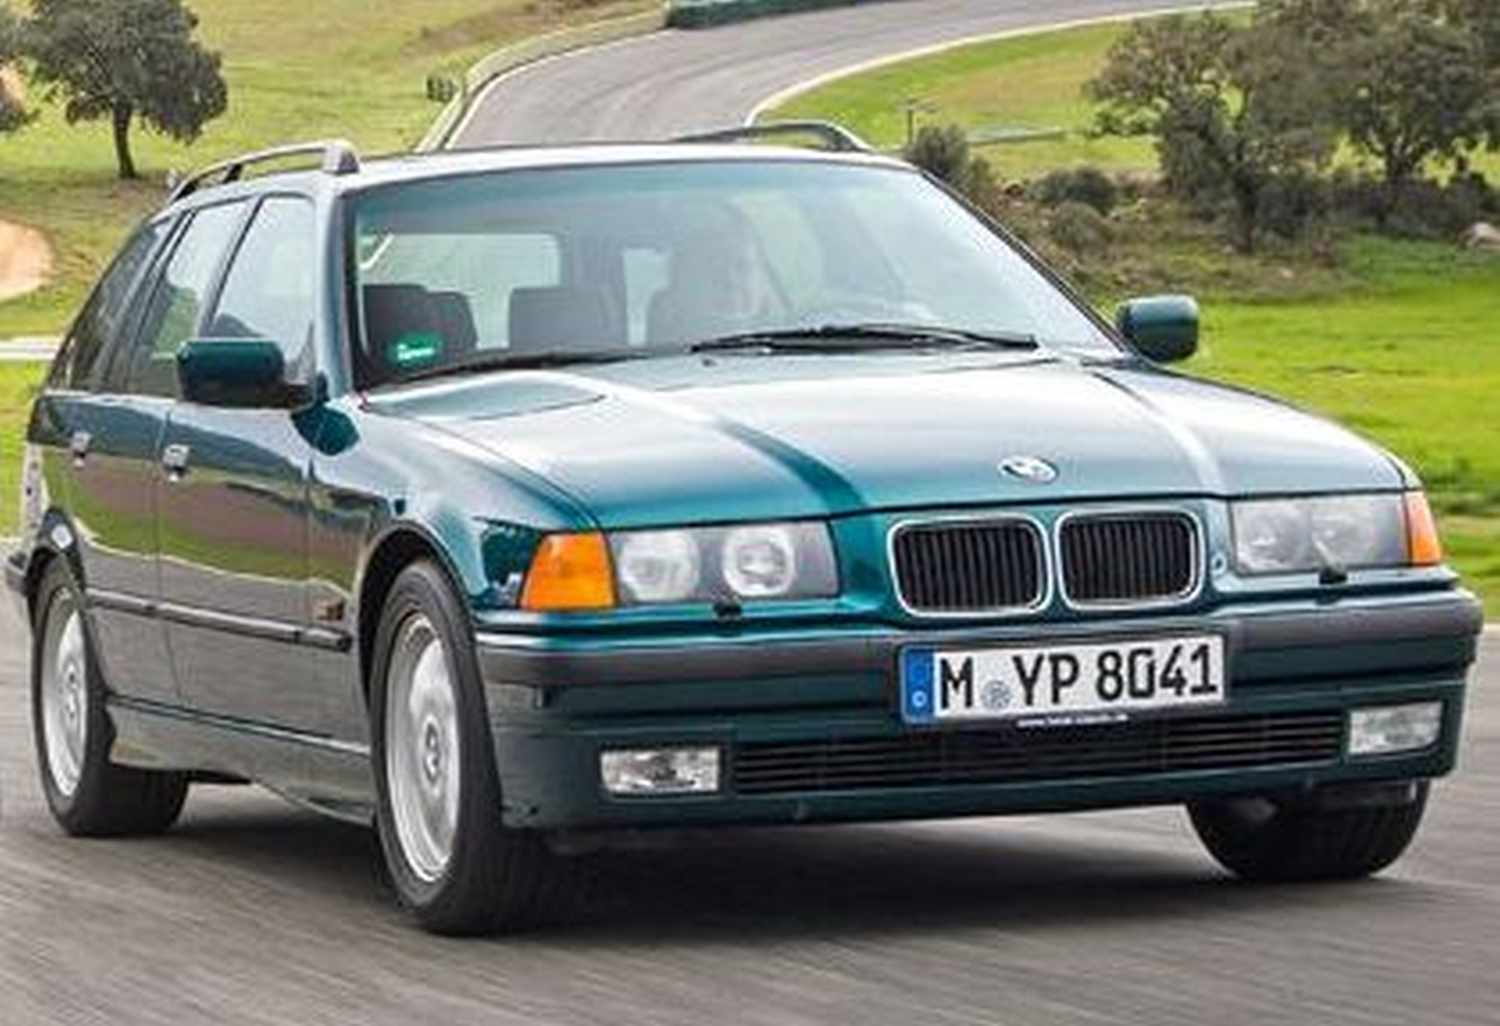 hight resolution of bmw 320i touring e36 comfort edition automatic 1997 1999 specs speed power carbon dioxide emissions fuel economy